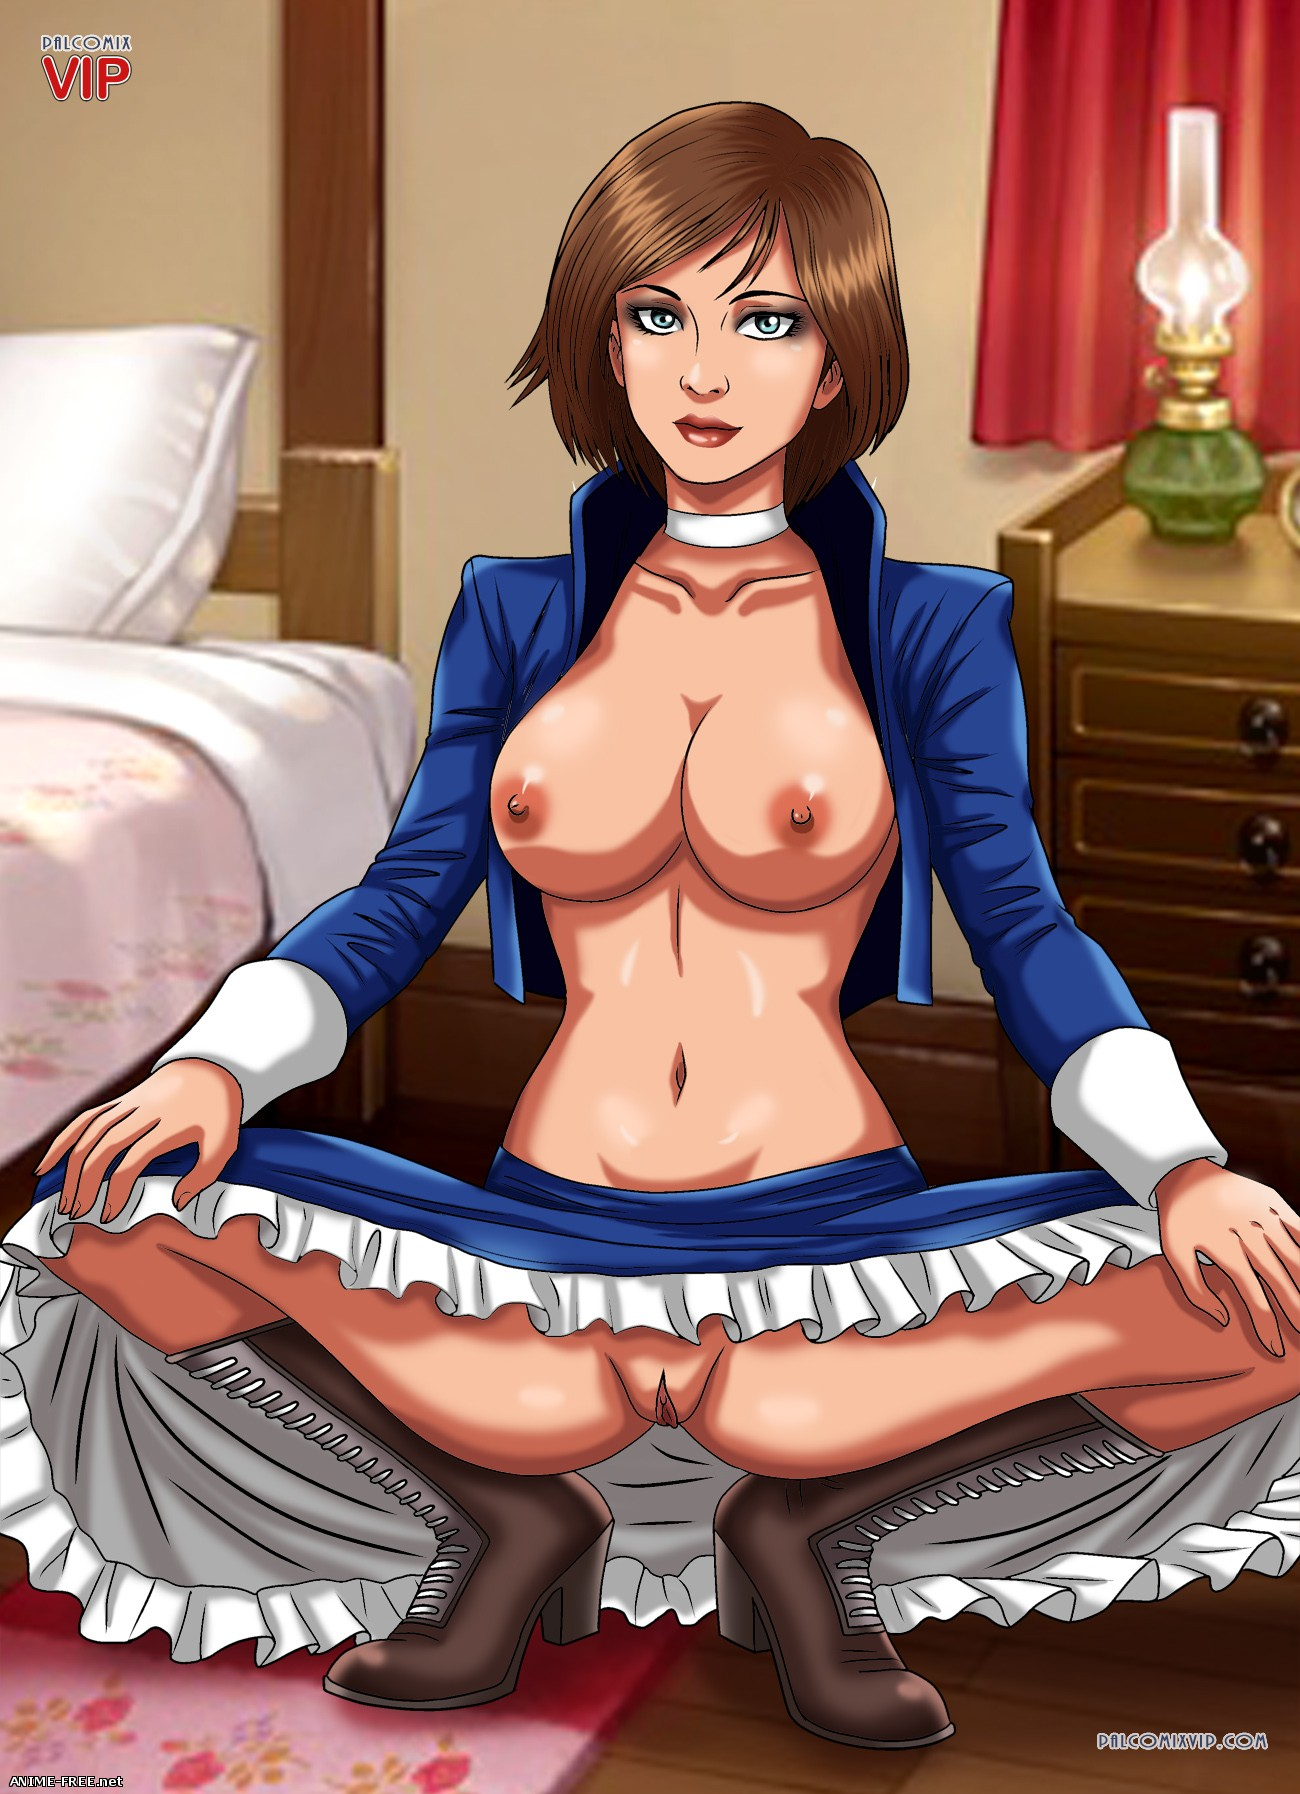 Palcomixvip SiteRip [Uncen] [JPG,PNG] Hentai ART